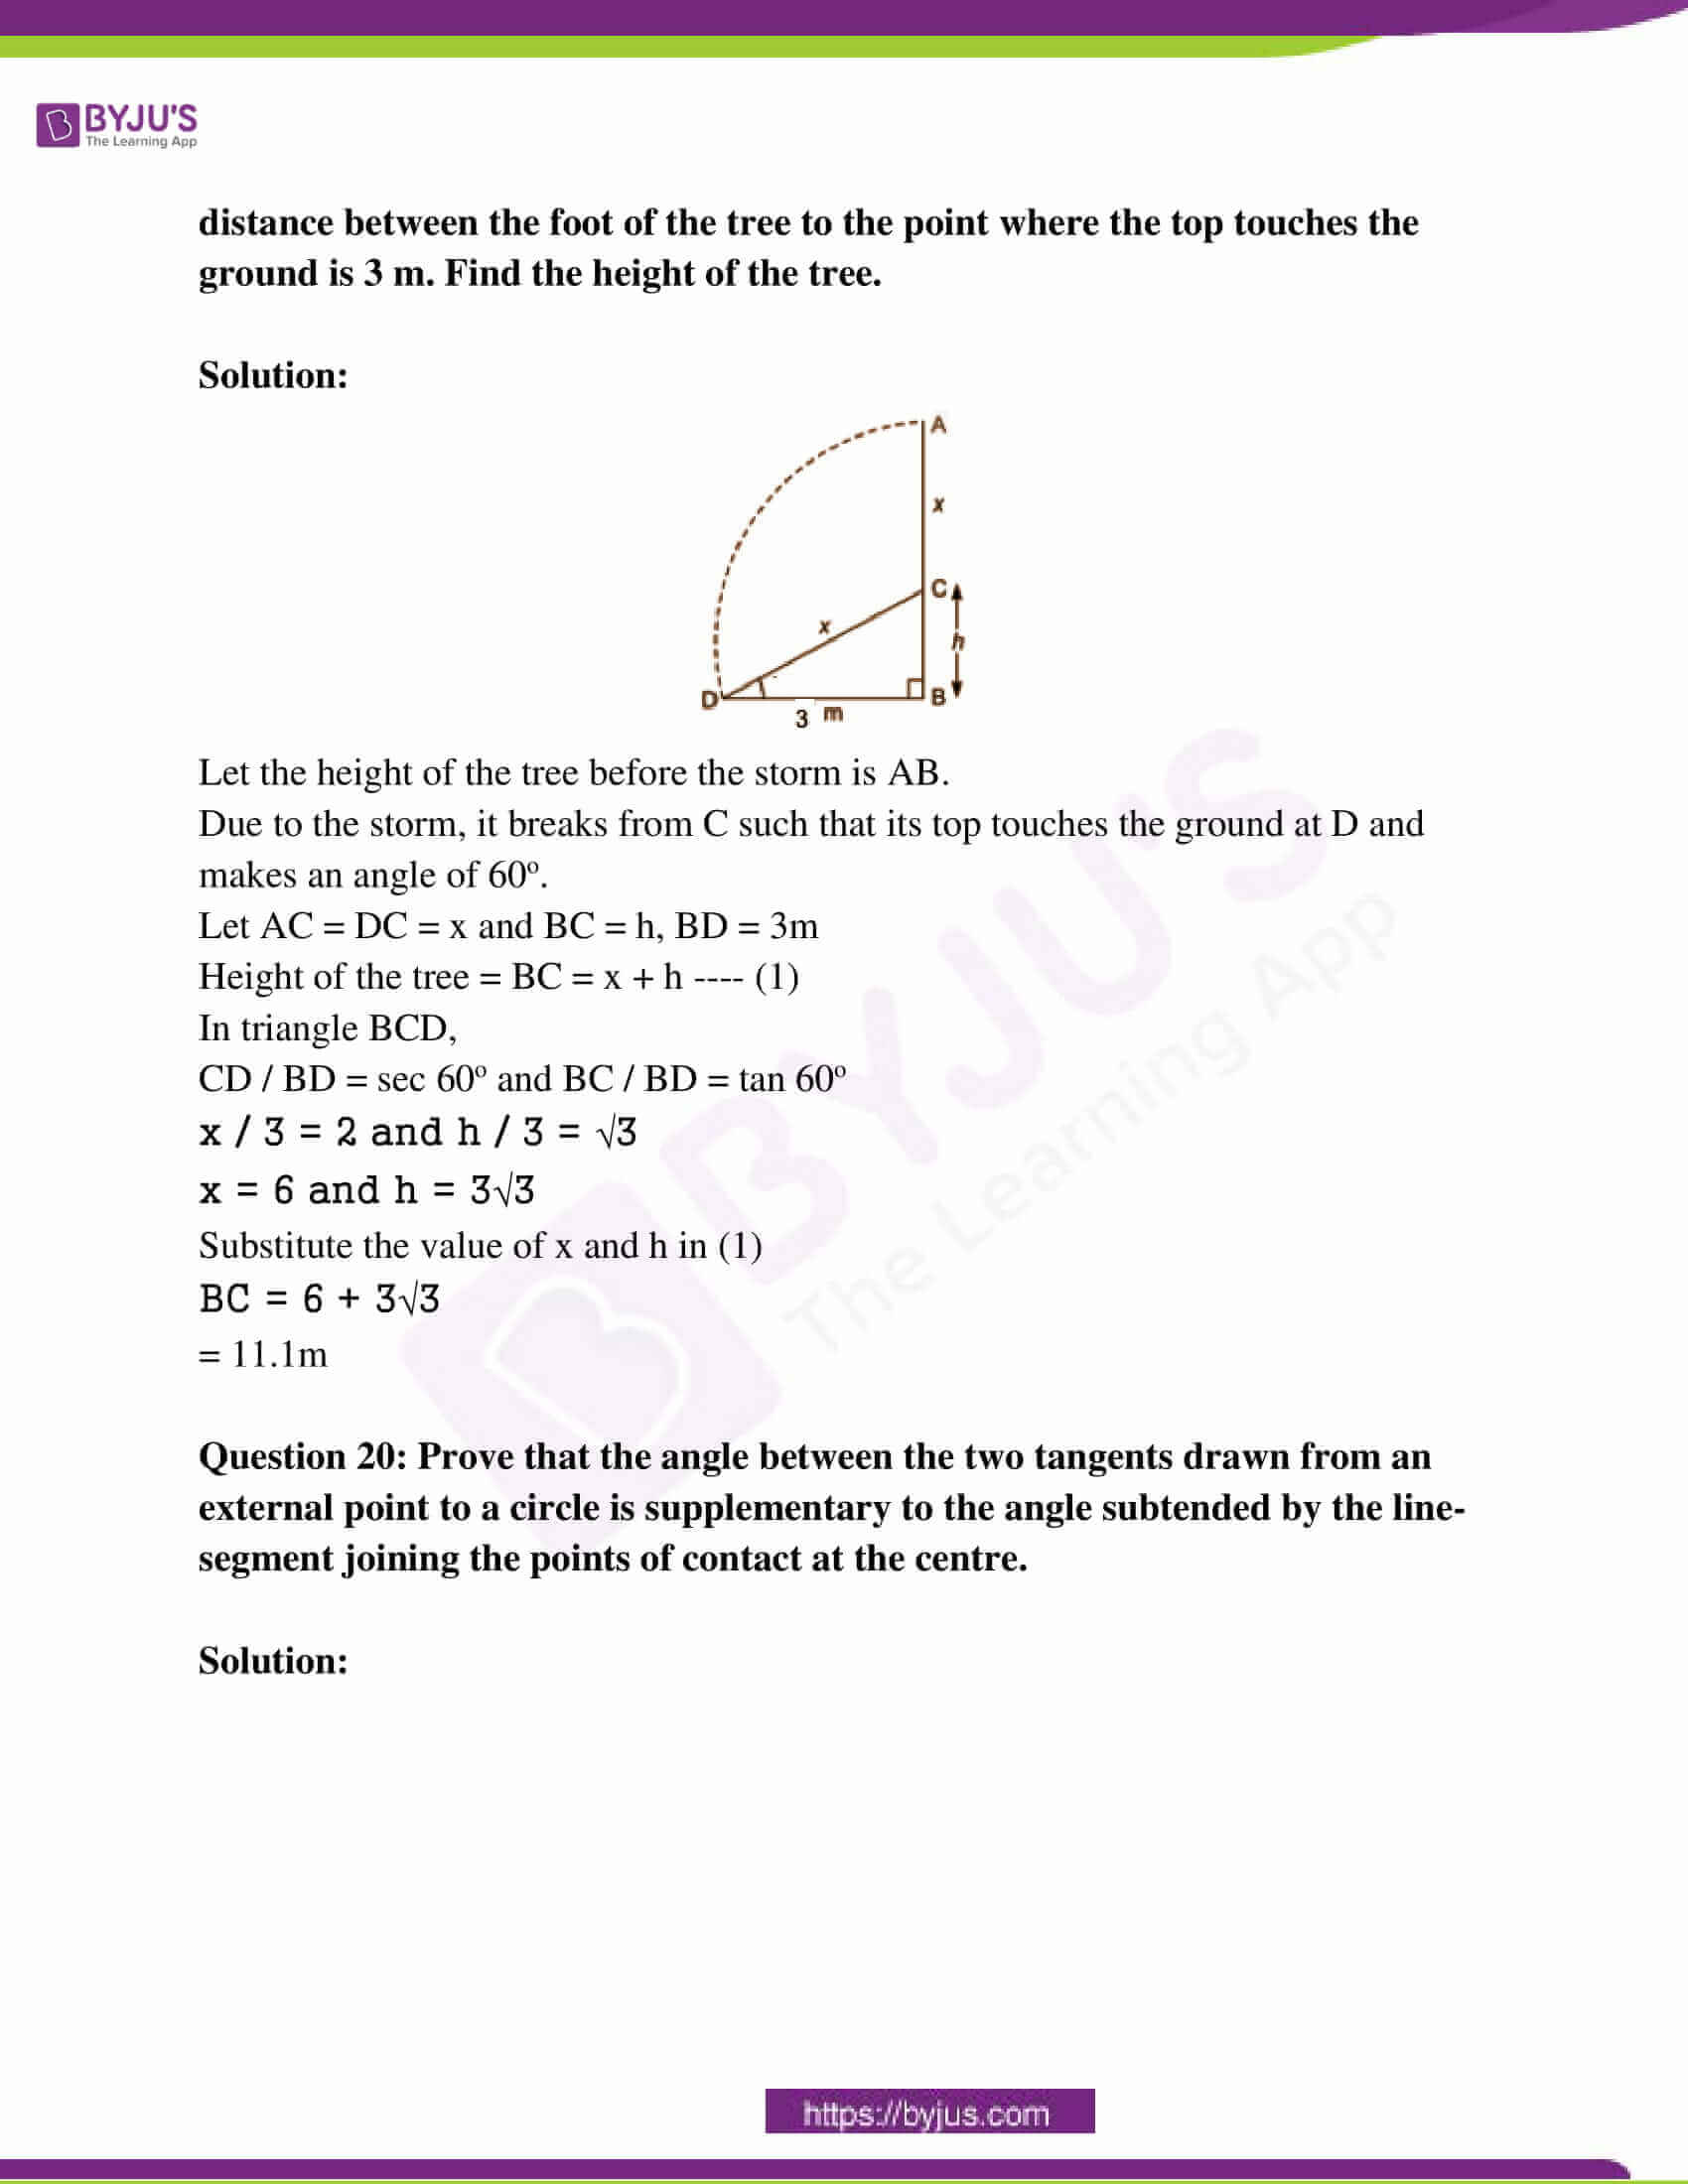 rajasthan board class 10 examination question paper sol march 2017 10